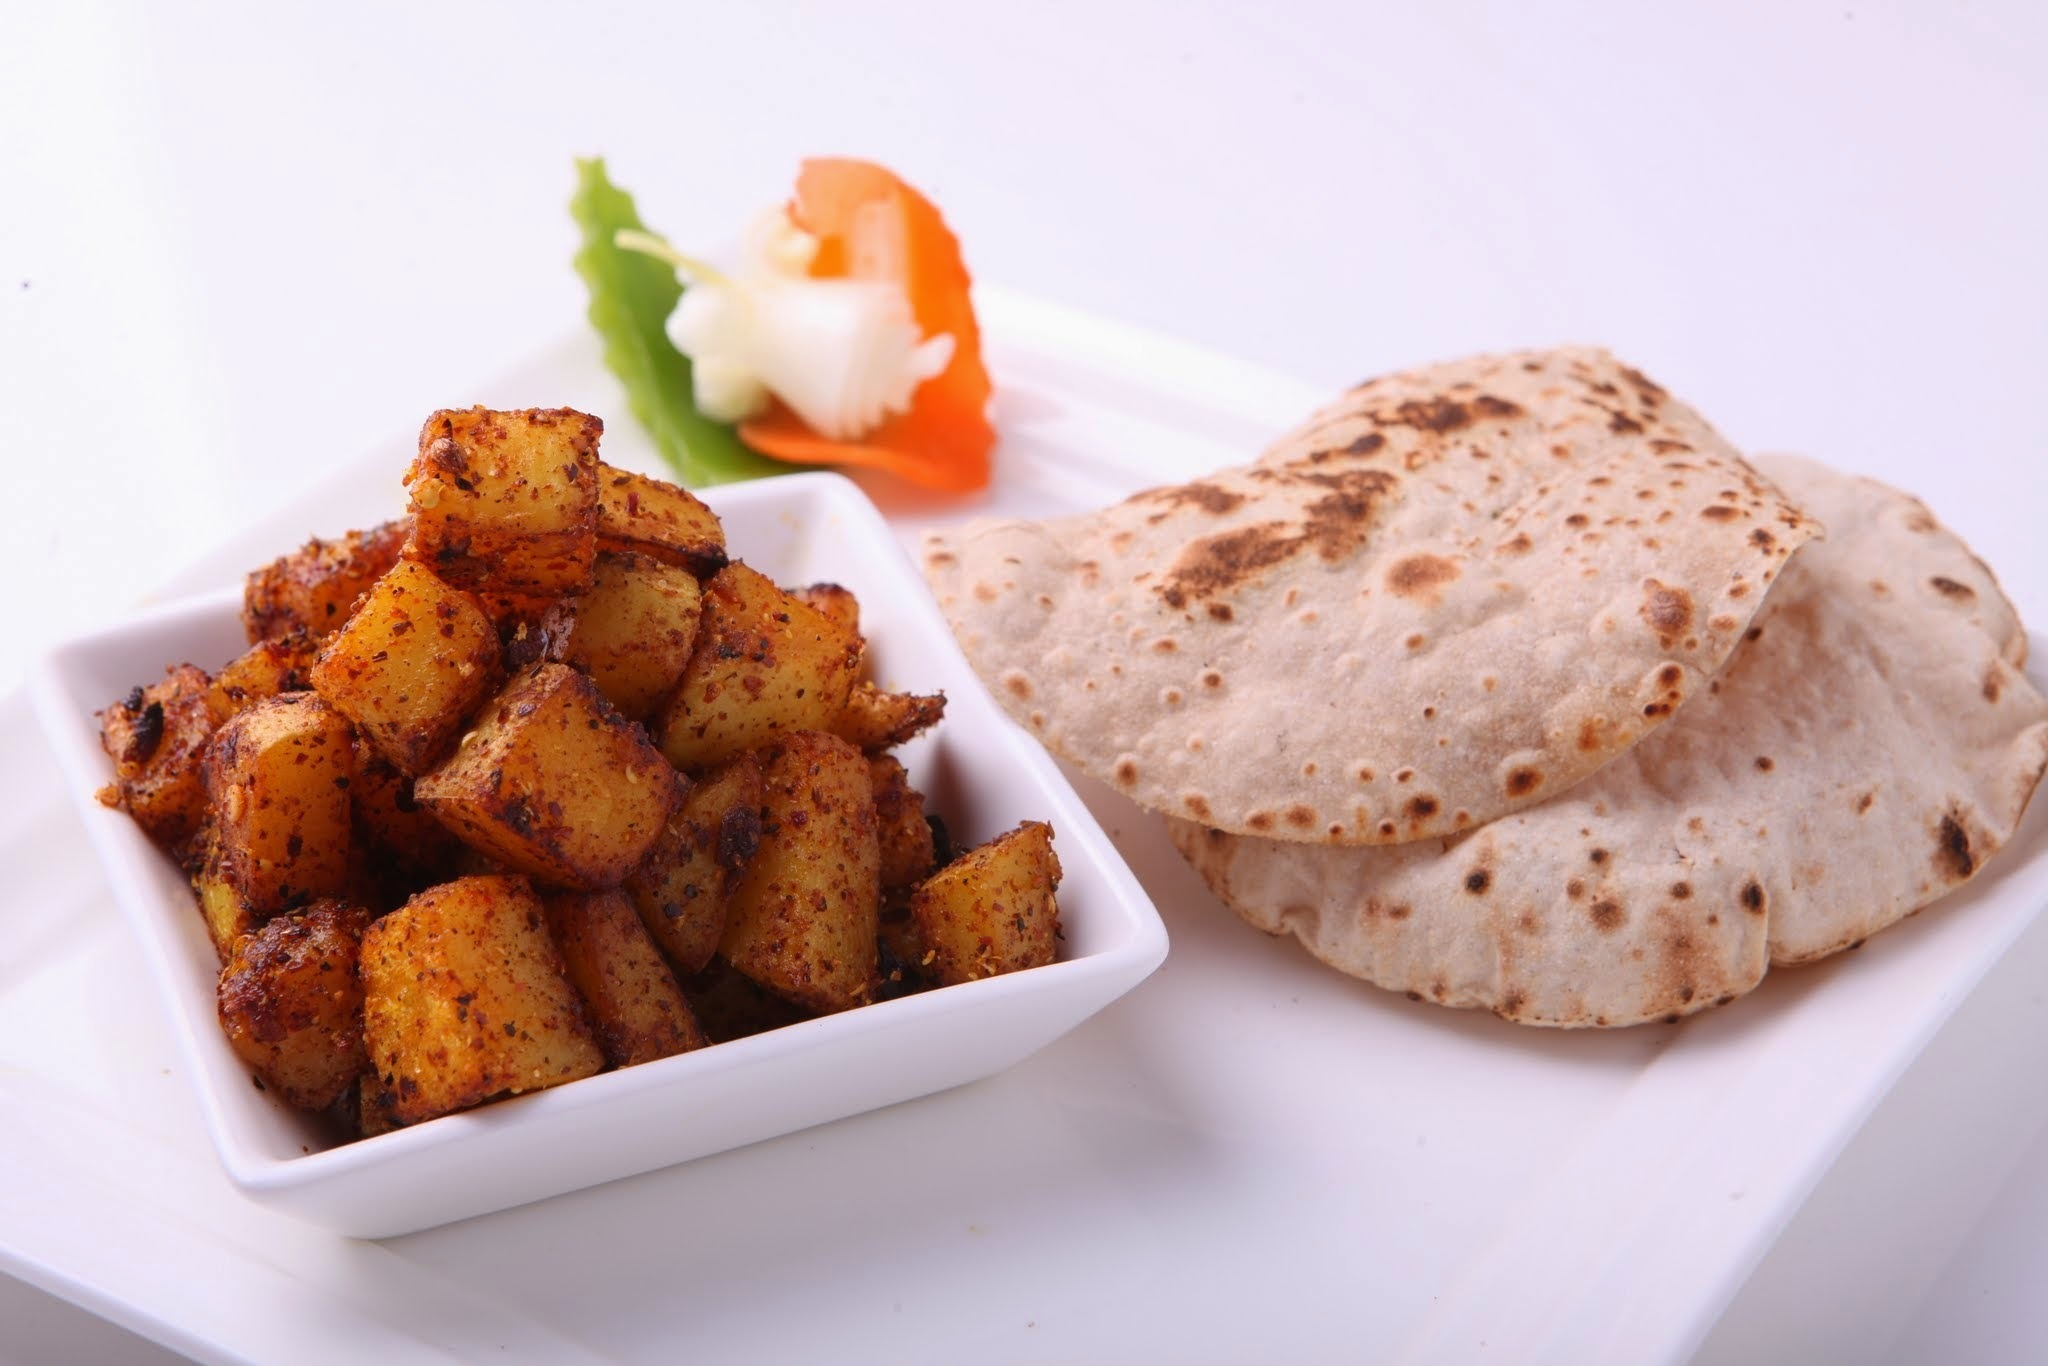 Thikka Aloo Recipe, aloo sukhi sabji, How To Make Thikka Aloo Recipe